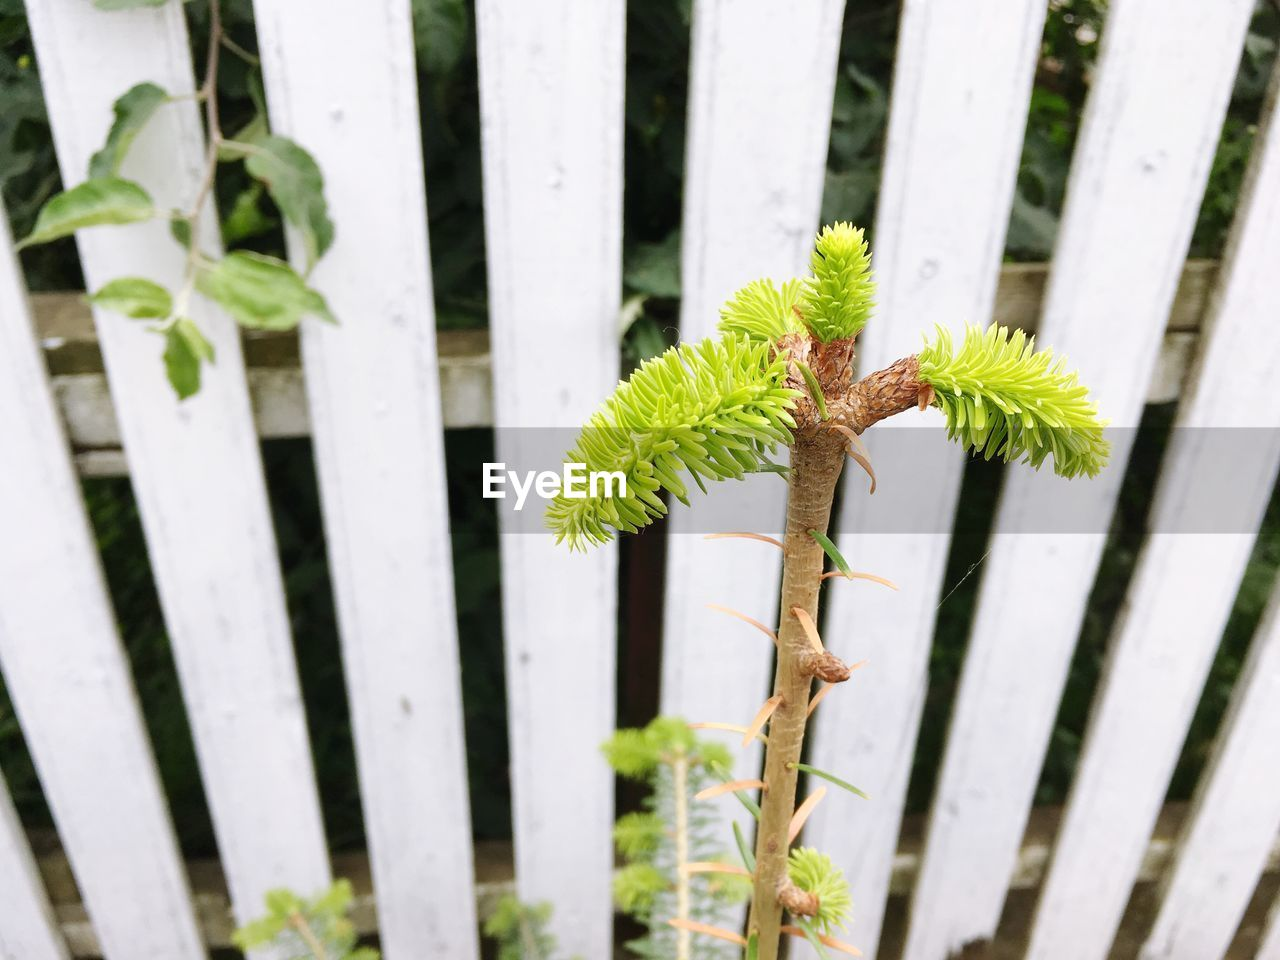 green color, boundary, fence, plant, barrier, growth, no people, close-up, day, leaf, nature, outdoors, plant part, wood - material, focus on foreground, beauty in nature, security, safety, animal wildlife, protection